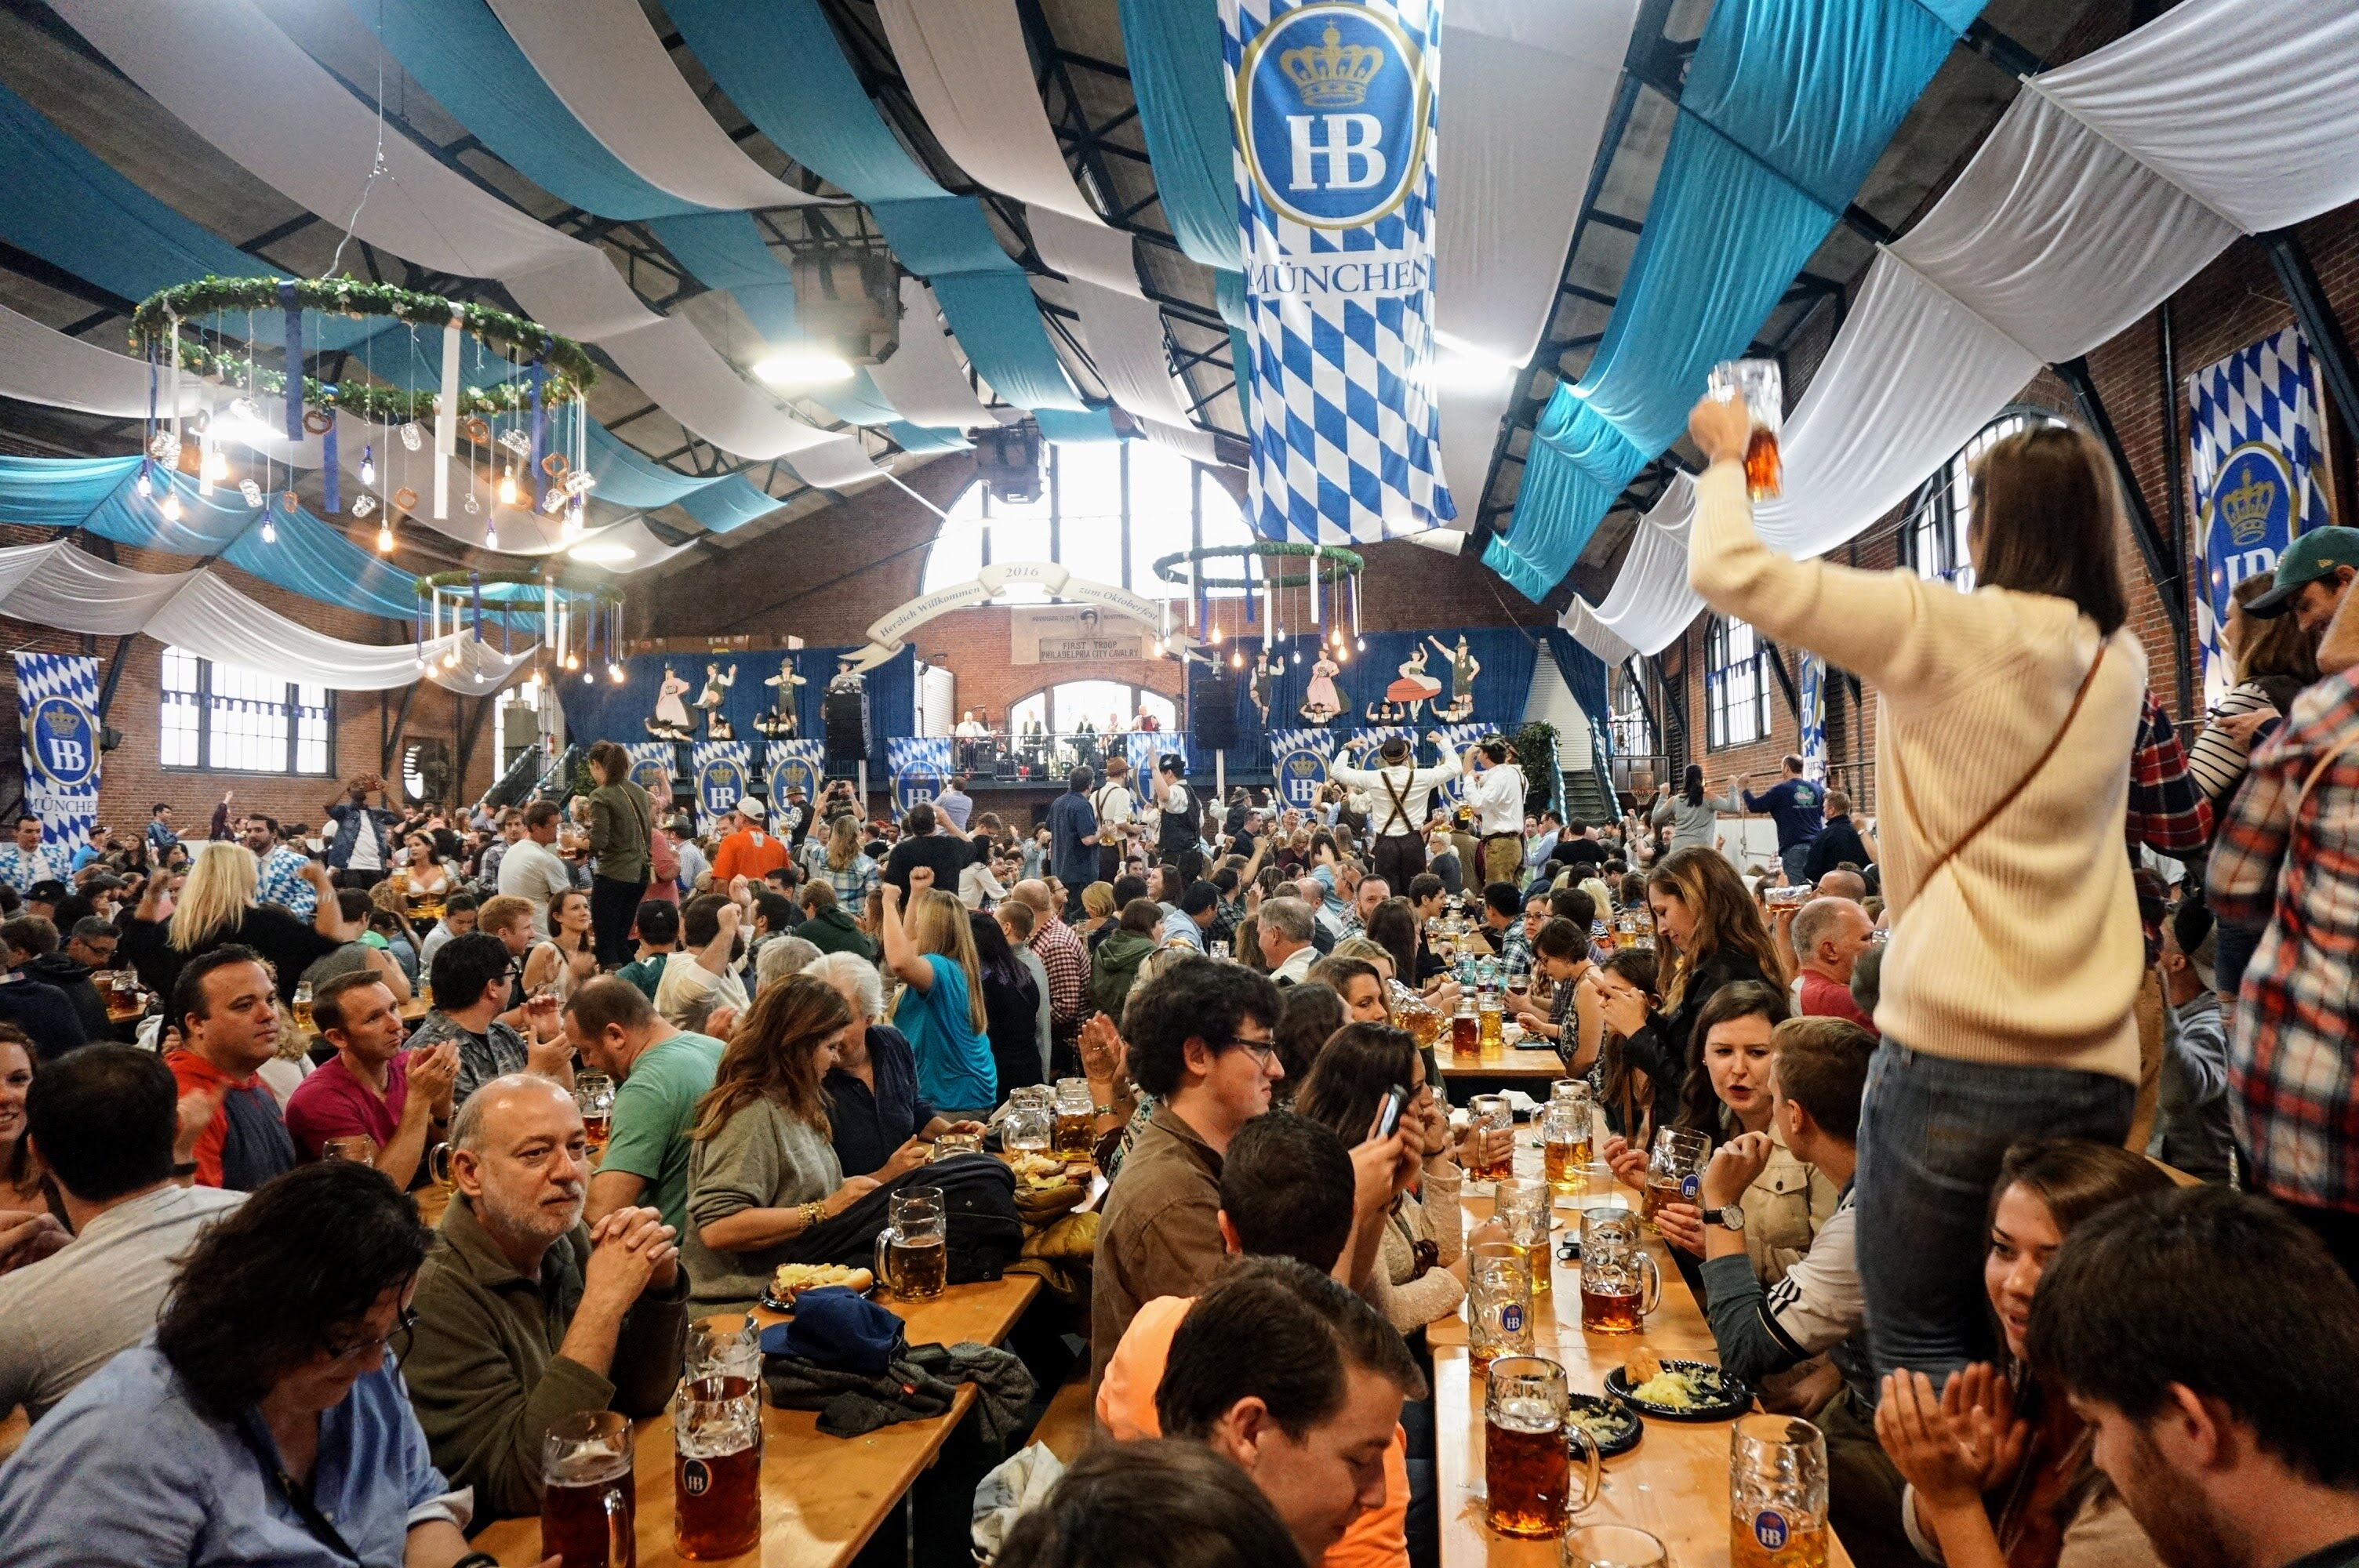 Brauhaus Schmitz is Bringing Munich to Philadelphia With a Grand Transformation of The 23rd St. Armory!